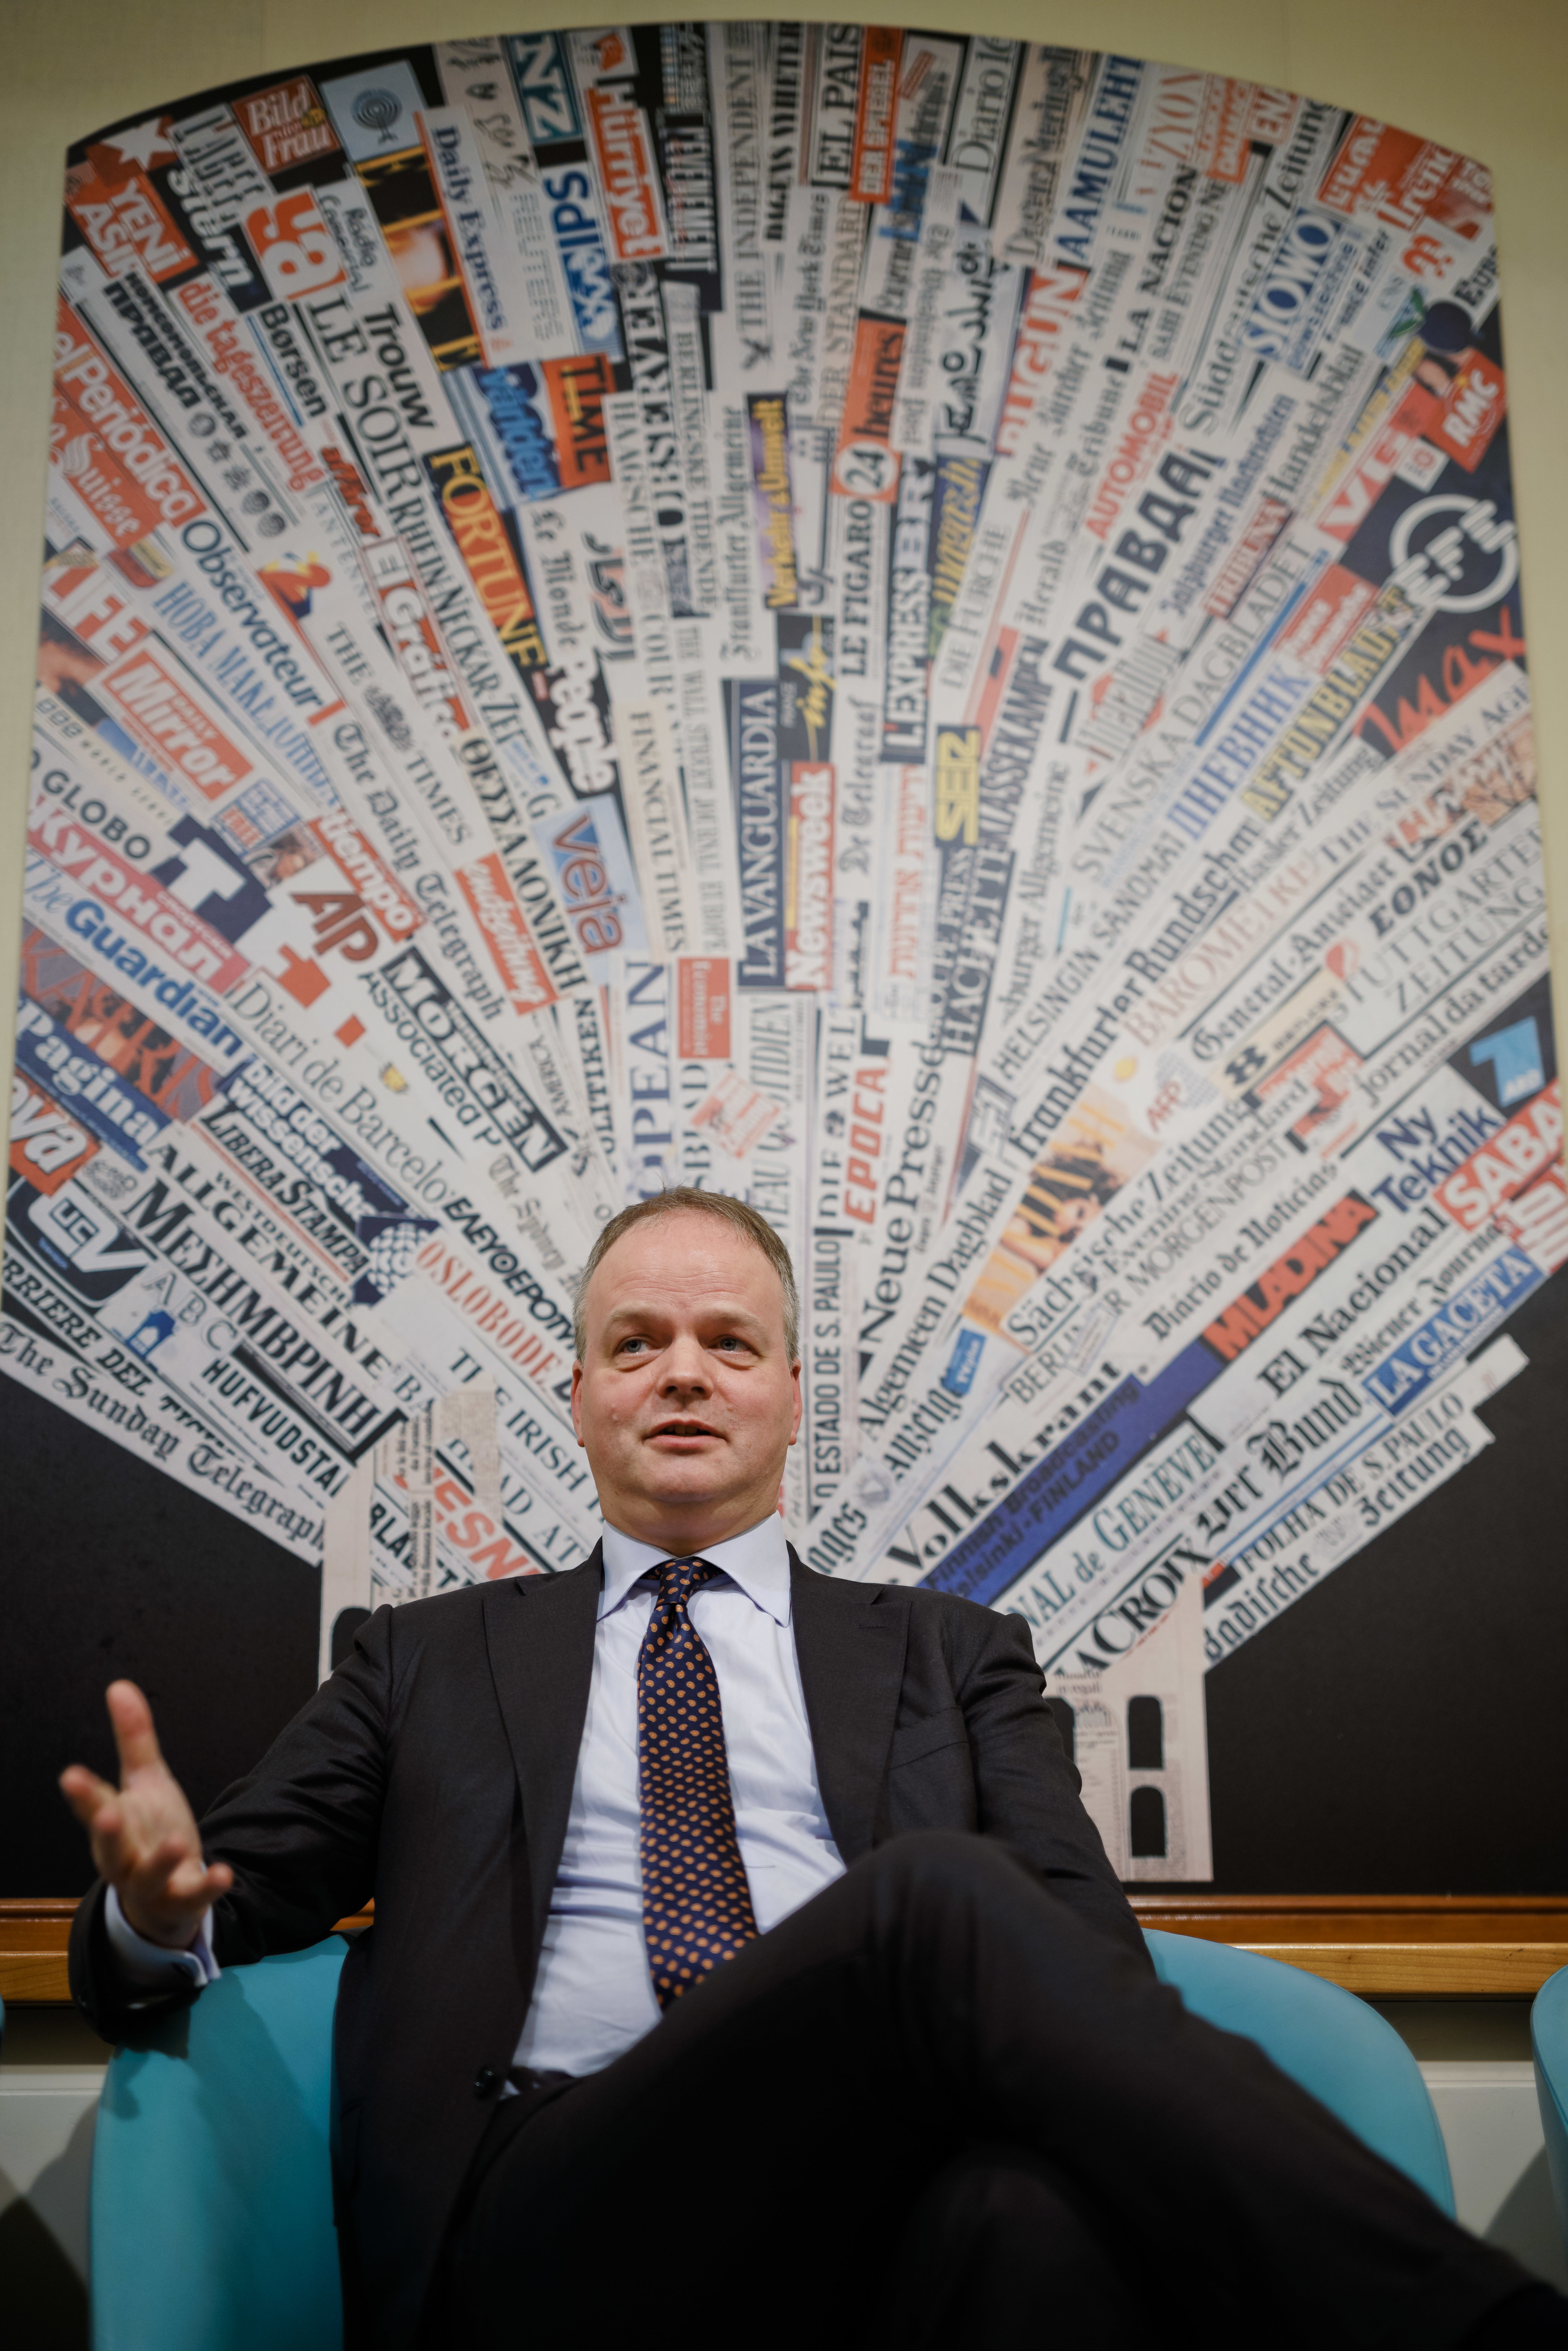 German art historian and director of the Uffizi galleries, Eike Schmidt, speaks during a press conference at the Foreign Press Club in Rome, Wednesday, Dec. 5, 2018. The Uffizi Galleries in Florence aims to discourage visitor overcrowding and ticket scalpers. Schmidt says Italy's most-visited art museum is meeting with Italian privacy guarantors to devise ways to use purchasers' photos to thwart scalpers looking to resell tickets at exorbitant prices. (AP Photo/Domenico Stinellis)